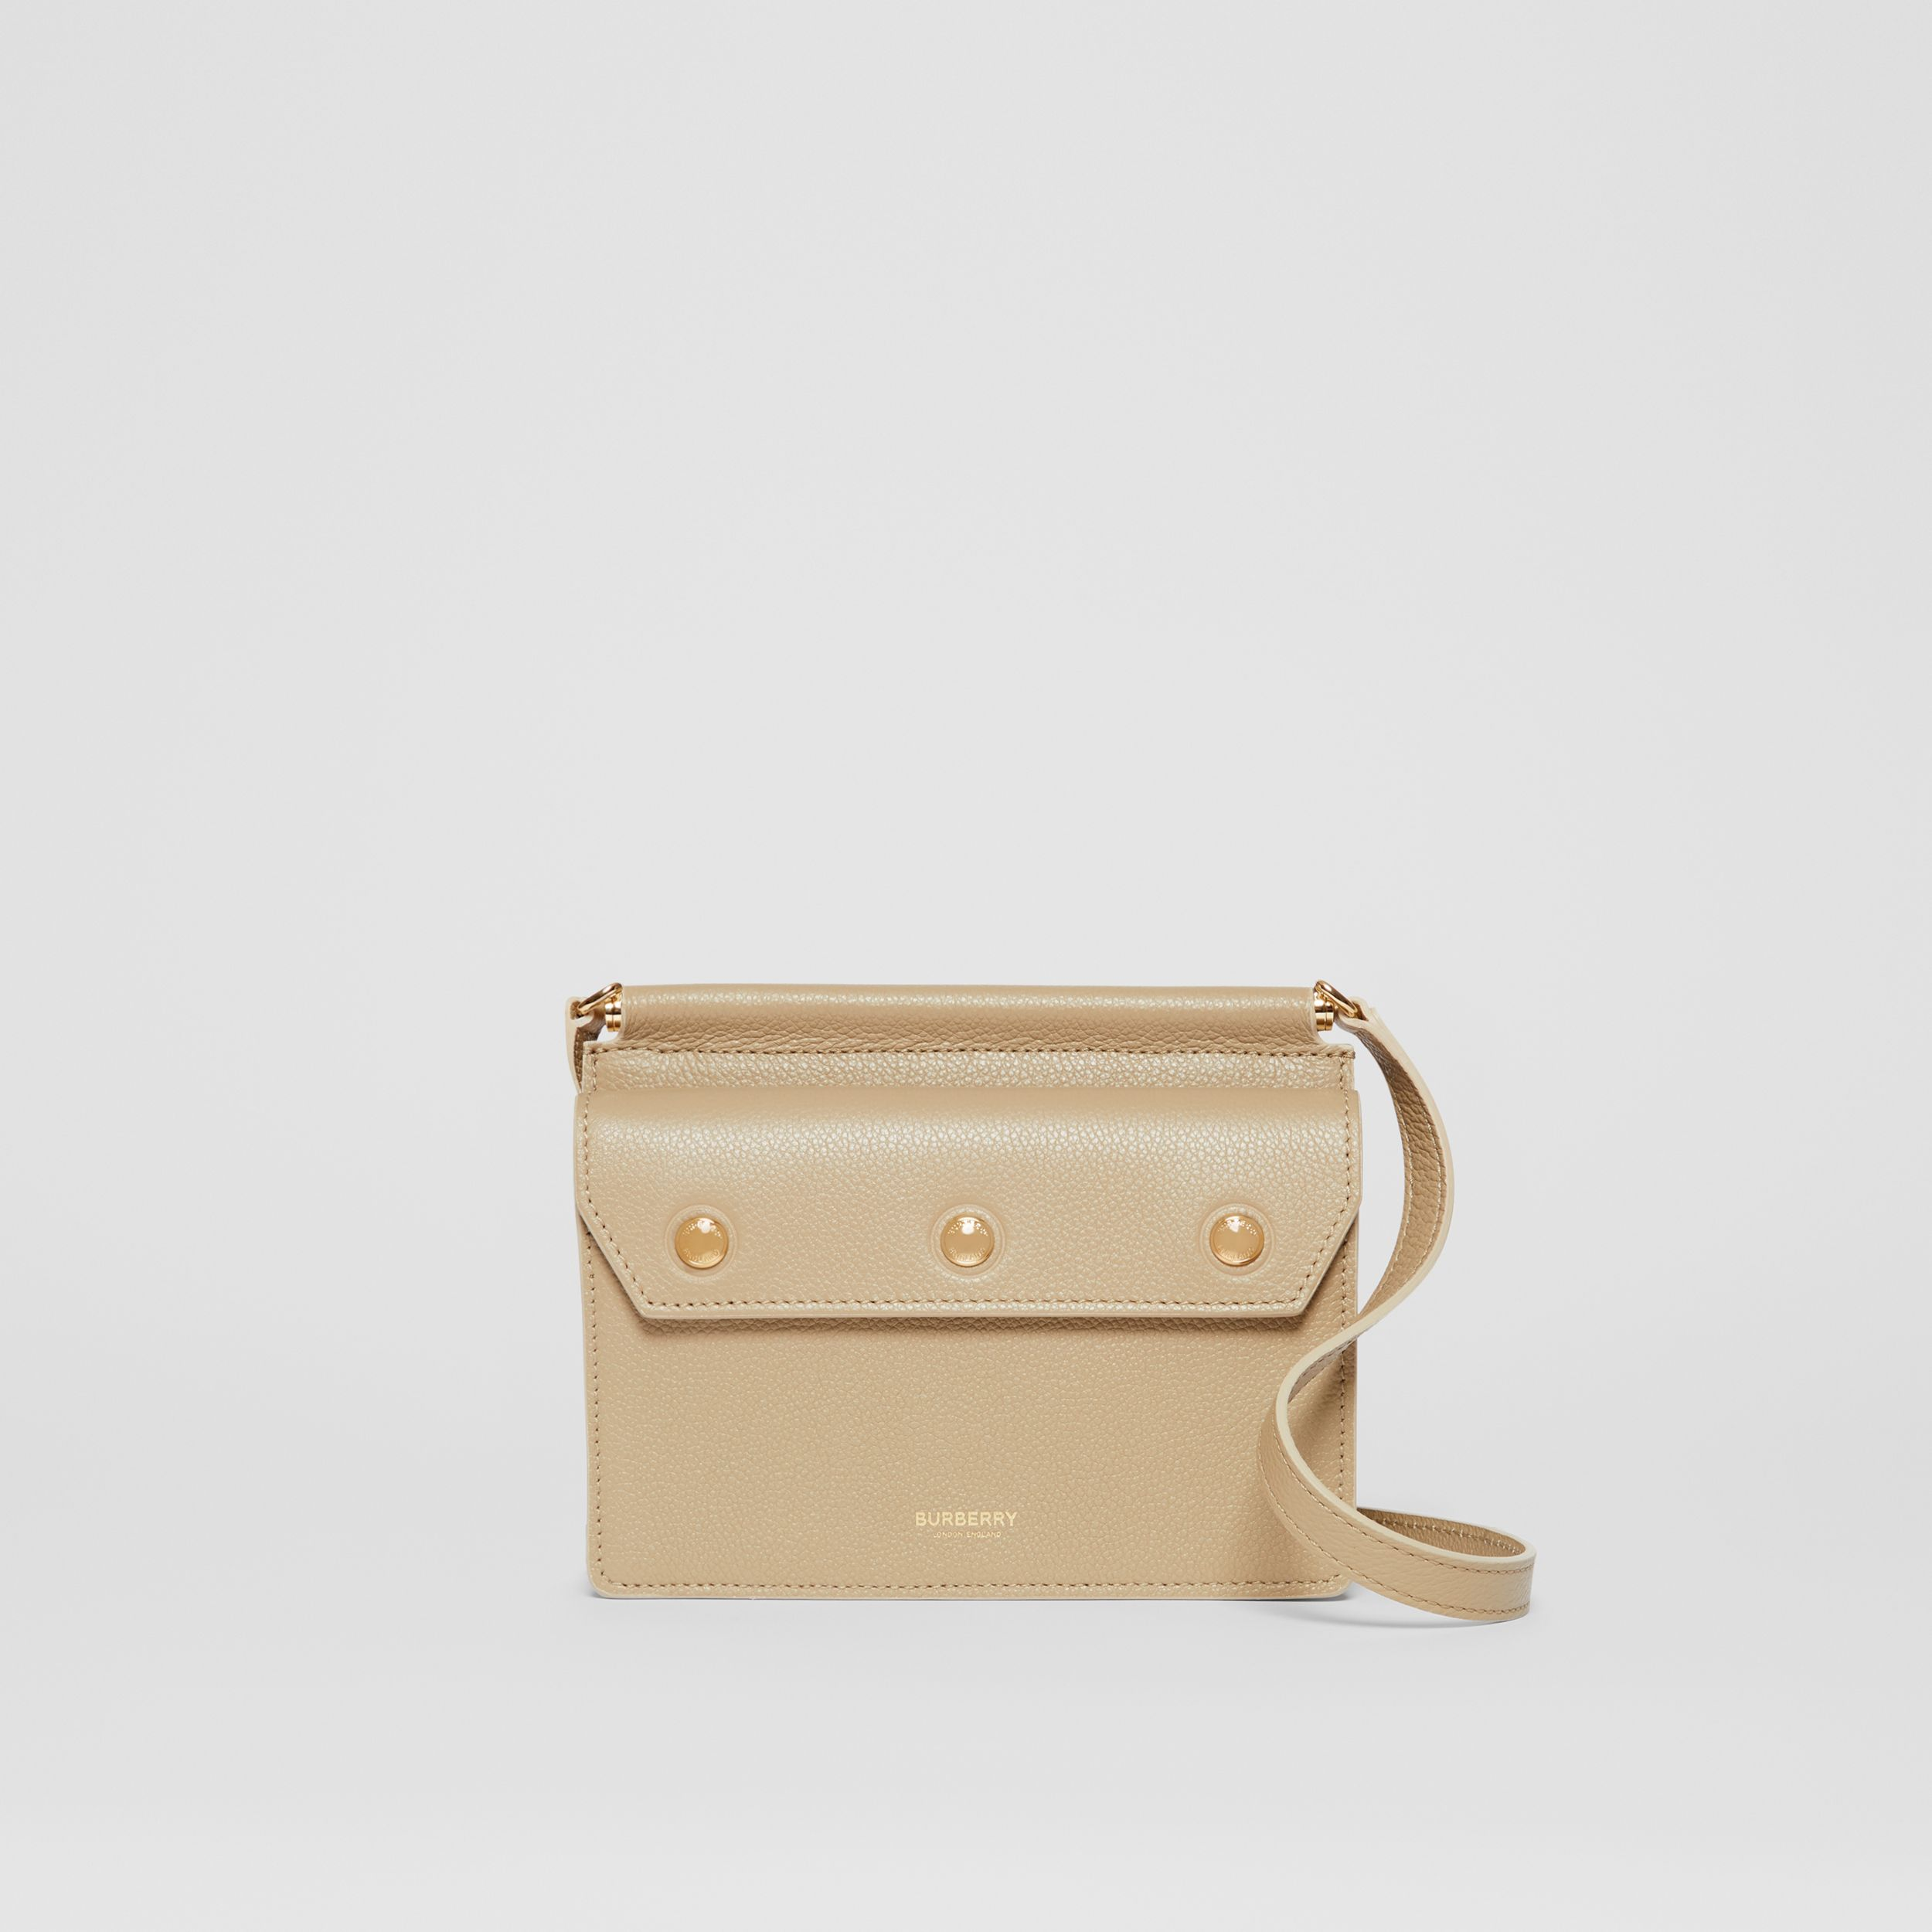 Mini Leather Title Bag with Pocket Detail in Honey - Women | Burberry - 1